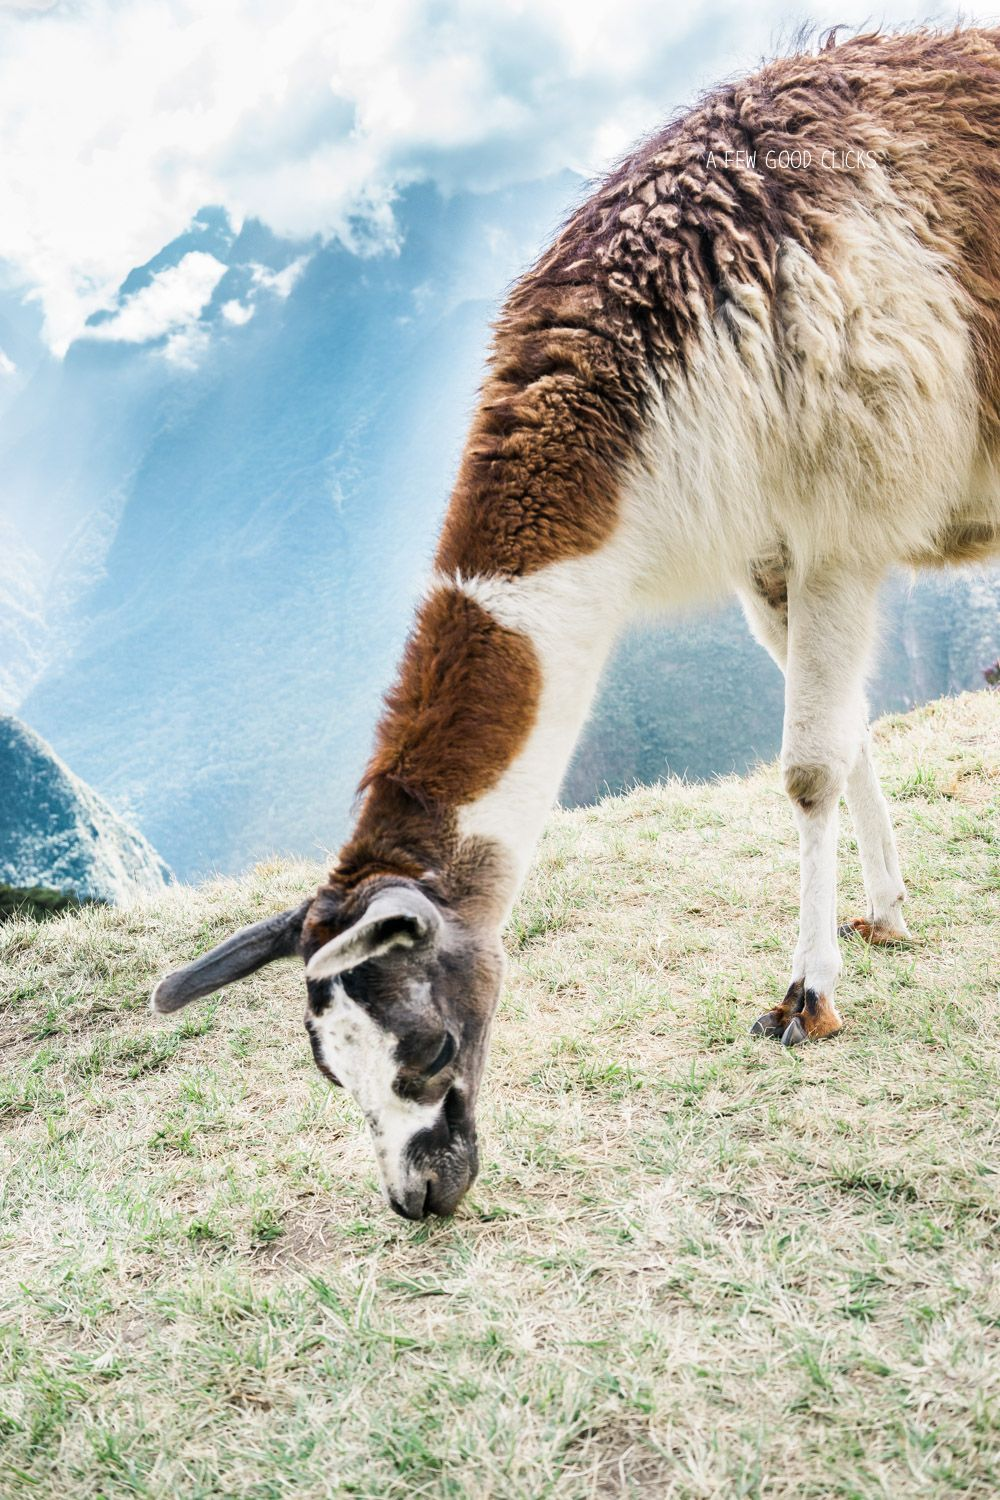 Best Things To Do In Peru - 12 Days Itinerary With Photos